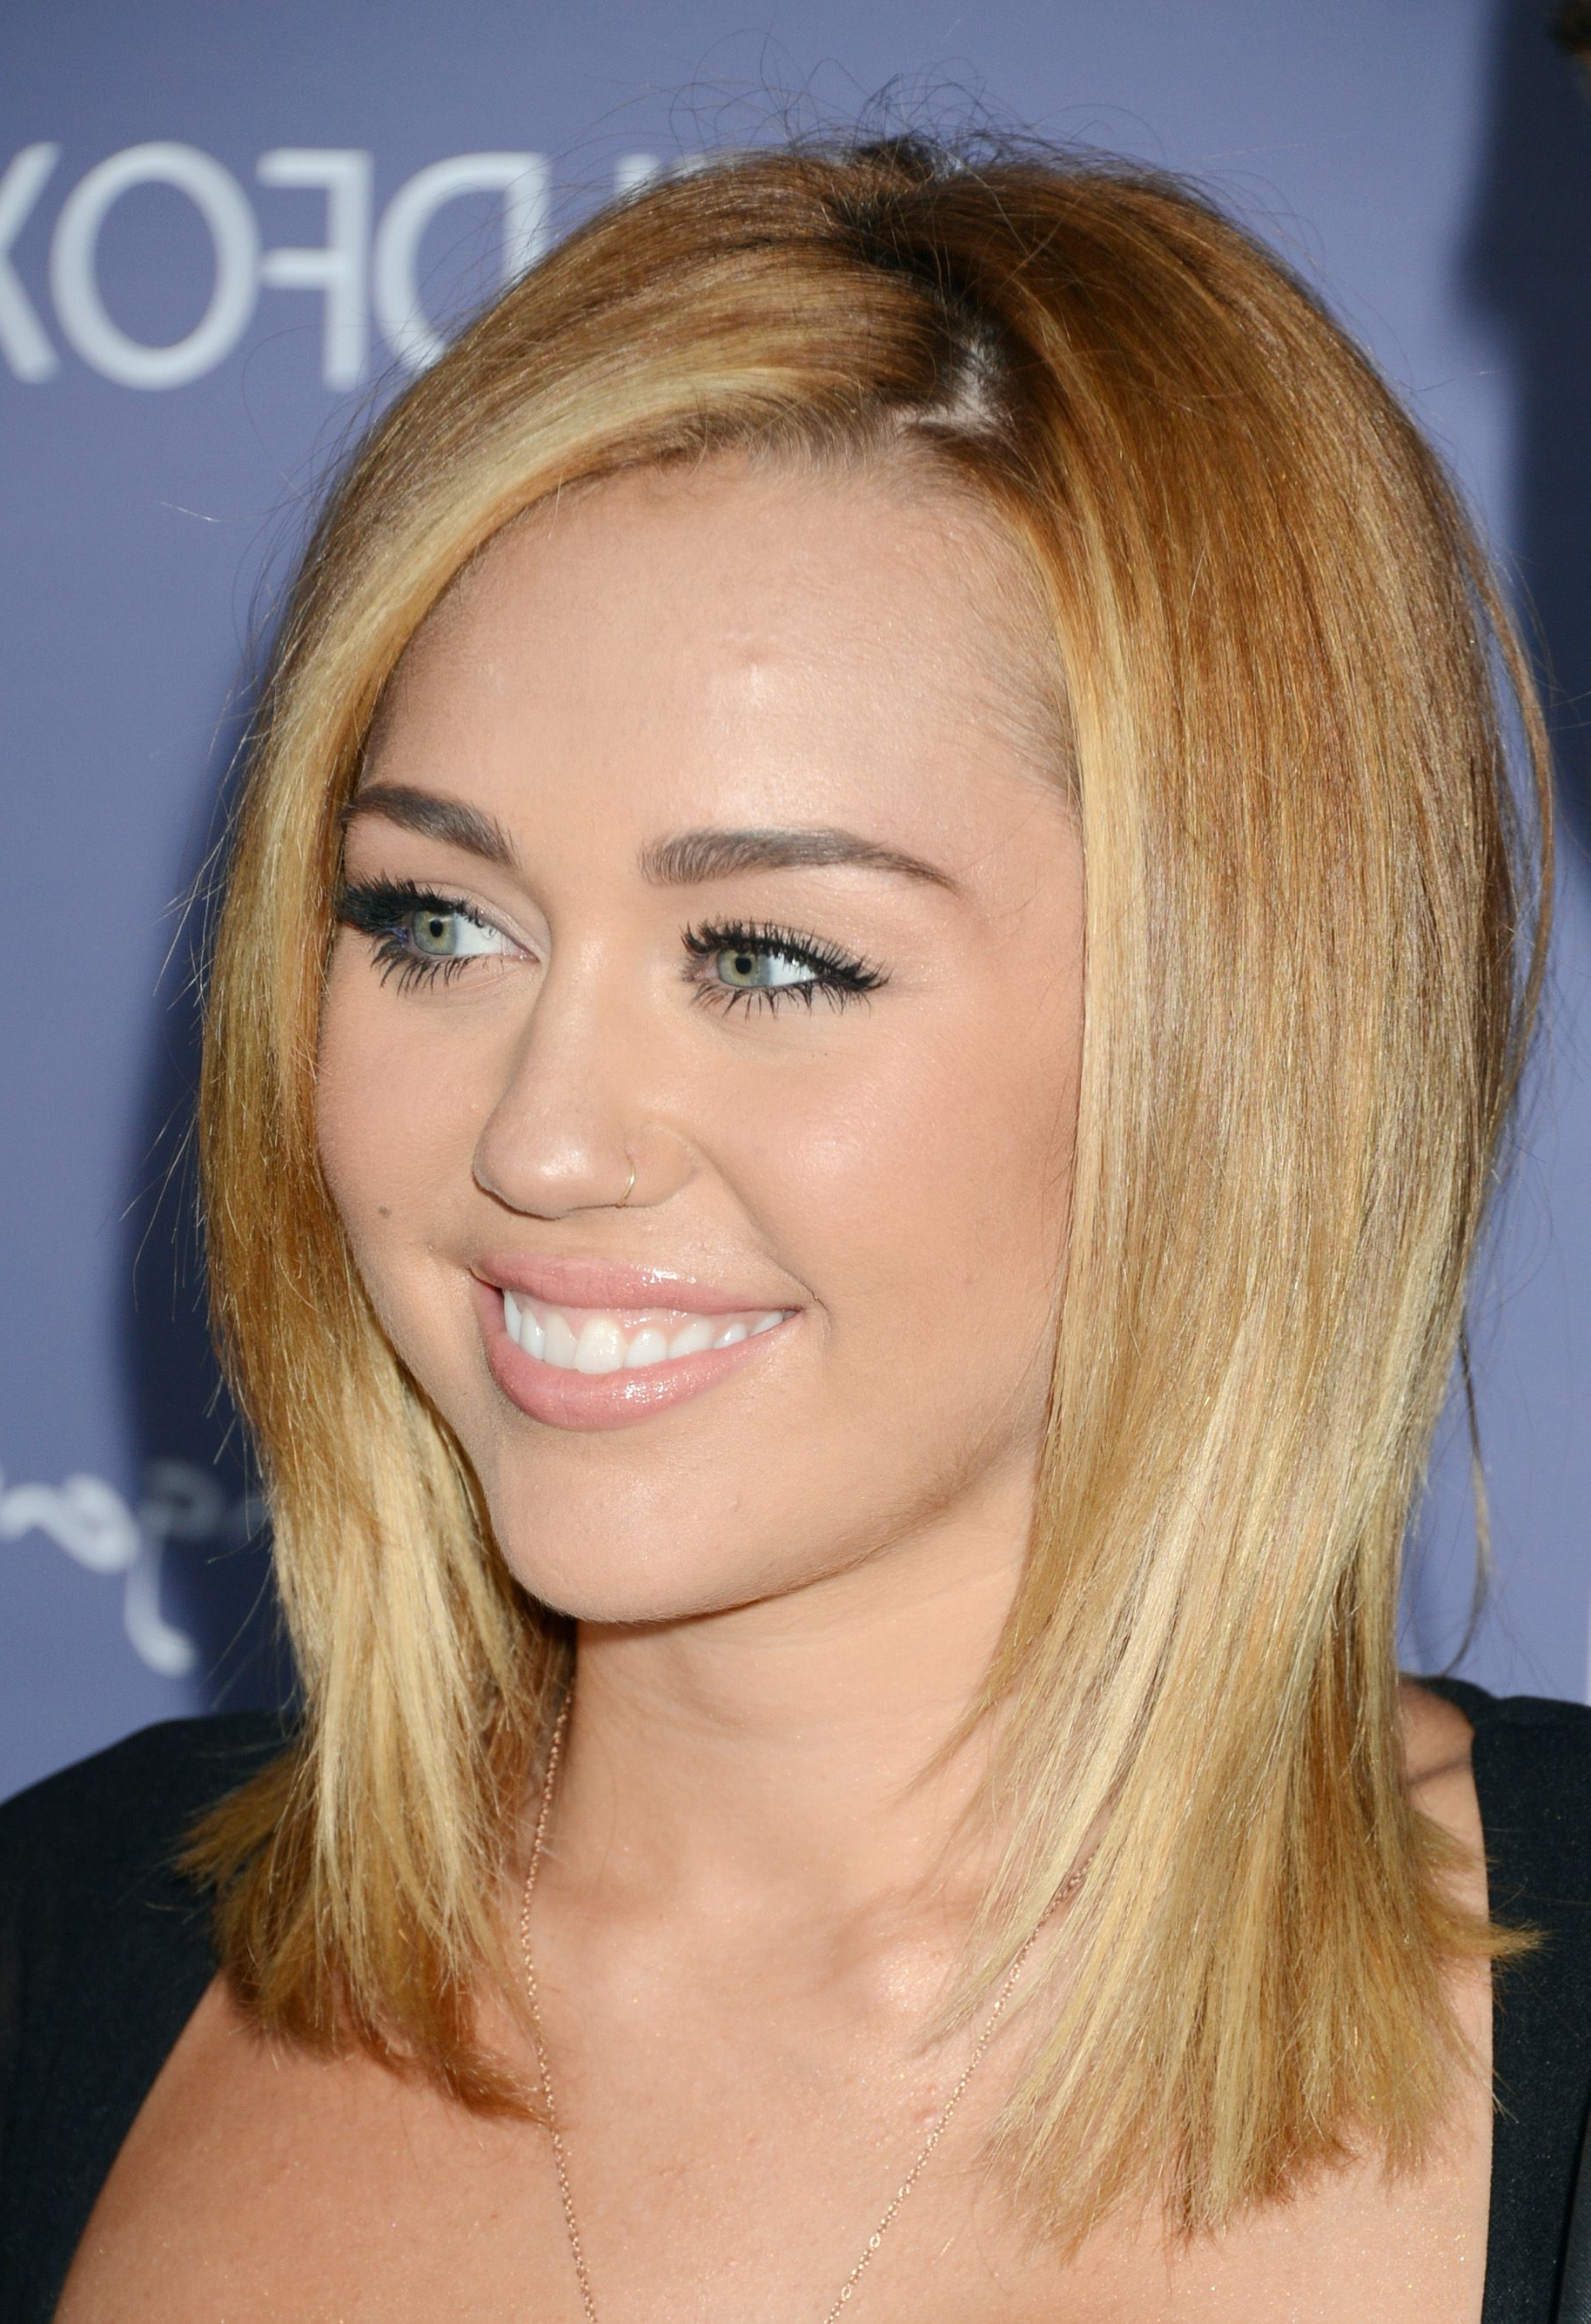 Miley Cyrus, Miley Cyrus (View 16 of 20)